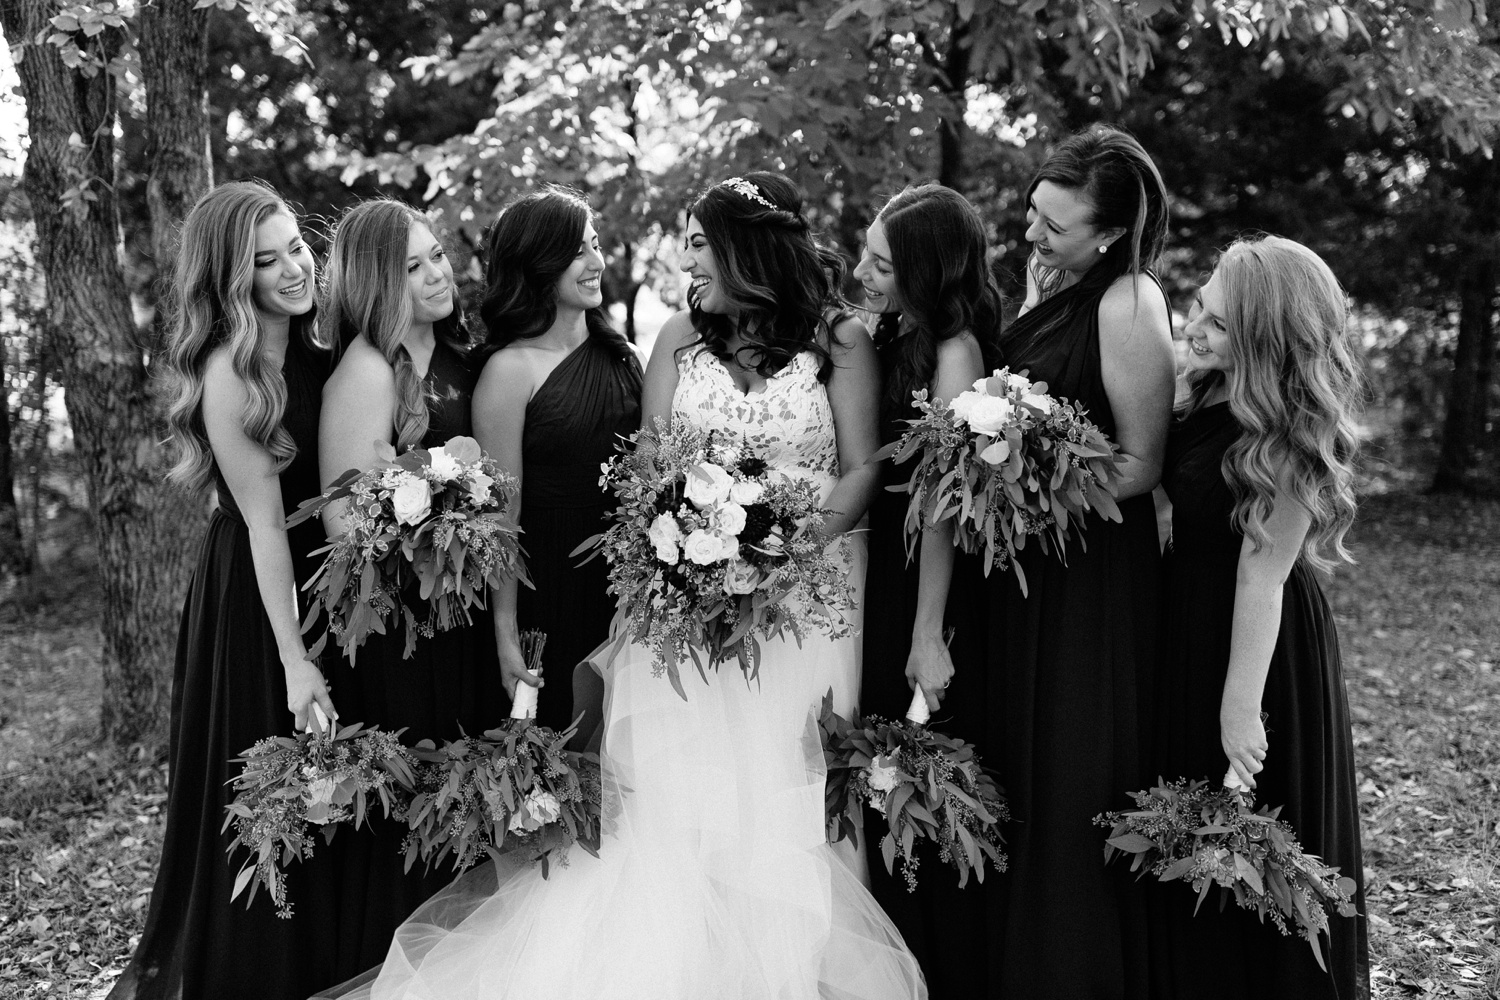 Grant + Lysette | a vibrant, deep burgundy and navy, and mixed metals wedding at Hidden Pines Chapel by North Texas Wedding Photographer Rachel Meagan Photography 039